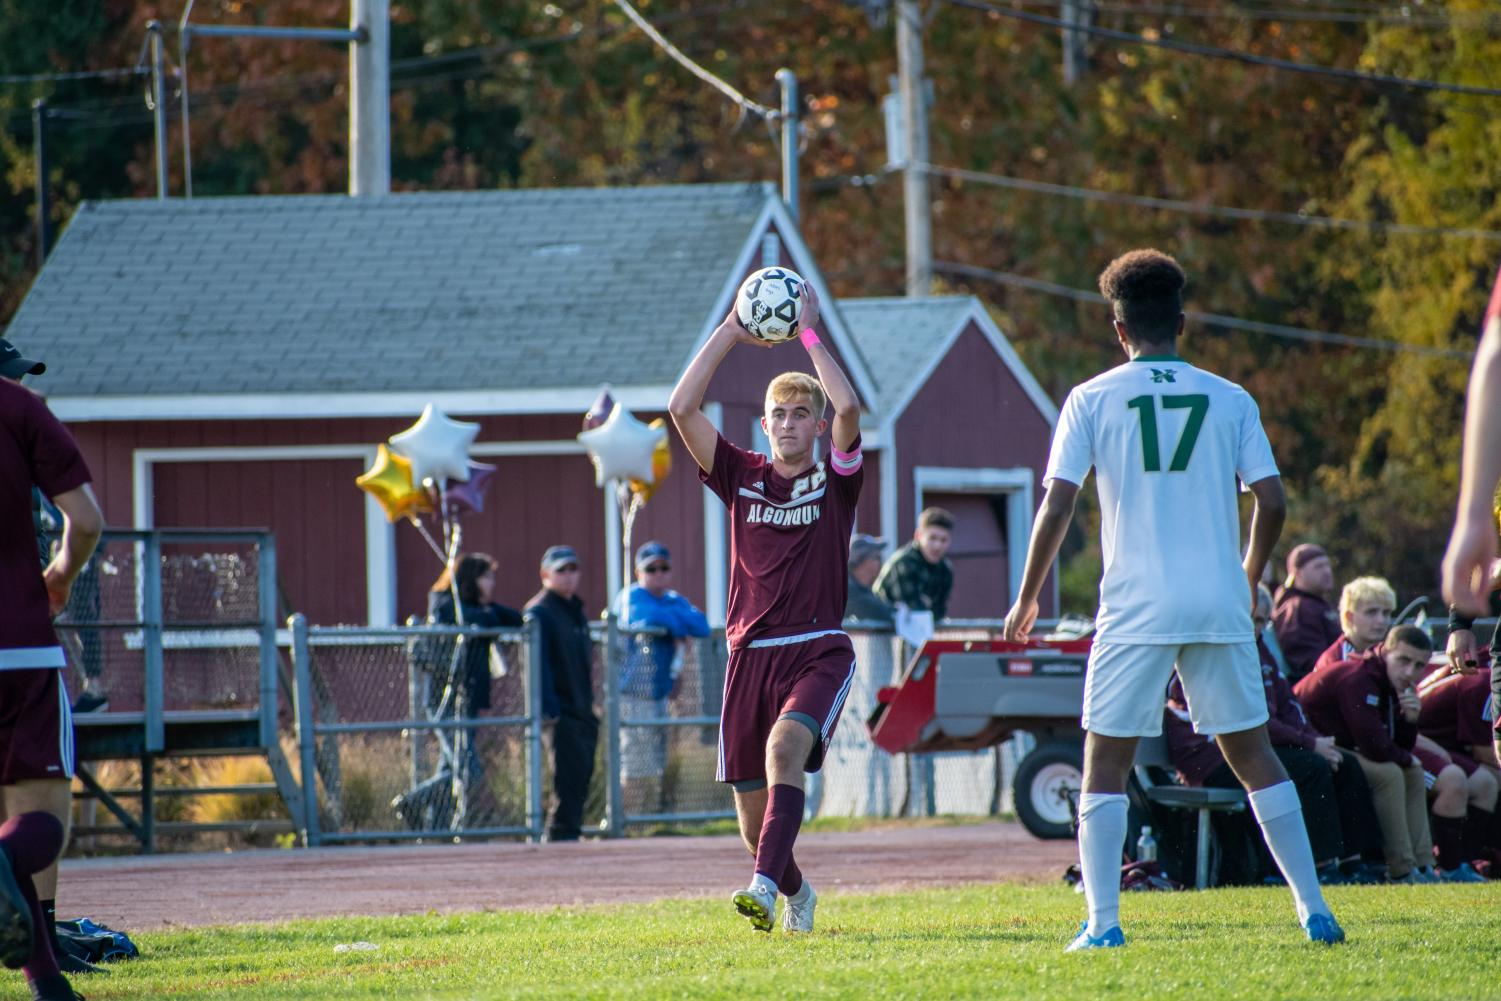 Junior captain Nick Alcock throws the ball in play against Nashoba on Oct. 26.  In addition to being a captain, Alcock has the opportunity to participate in leadership workshops held by the Athletic Council and outside workshops from the MIAA as a student ambassador.